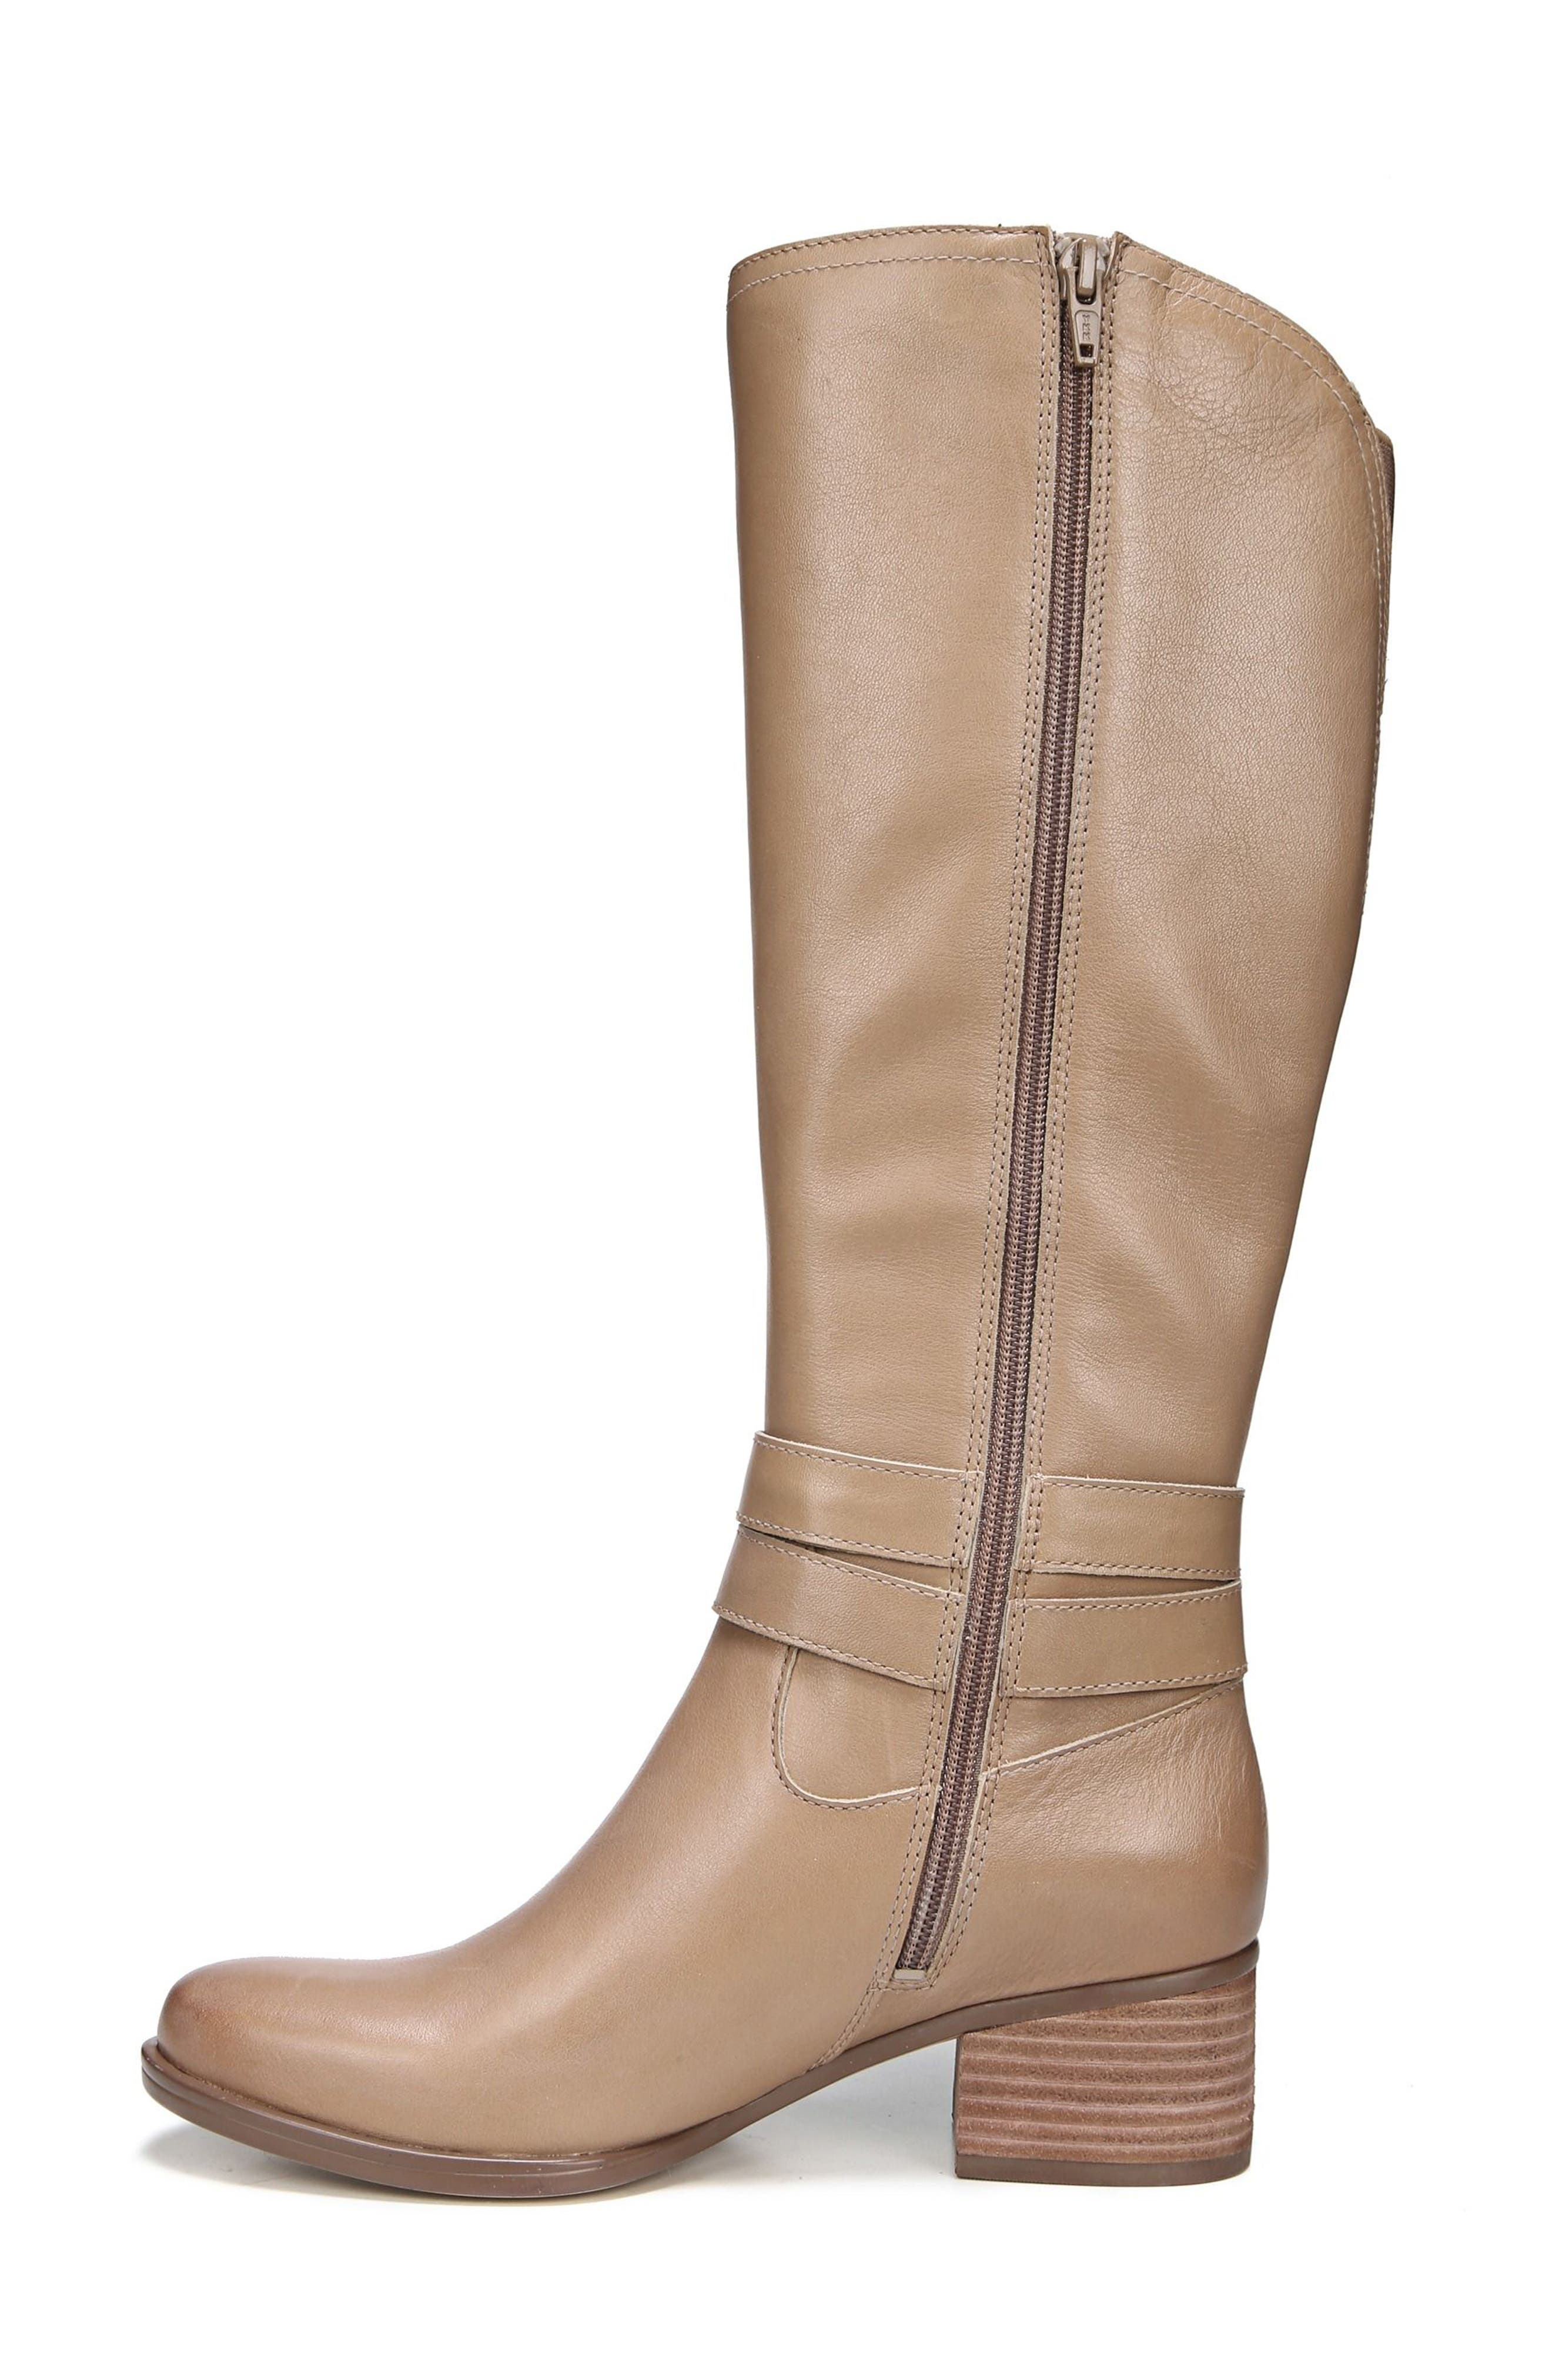 Dev Buckle Strap Boot,                             Alternate thumbnail 15, color,